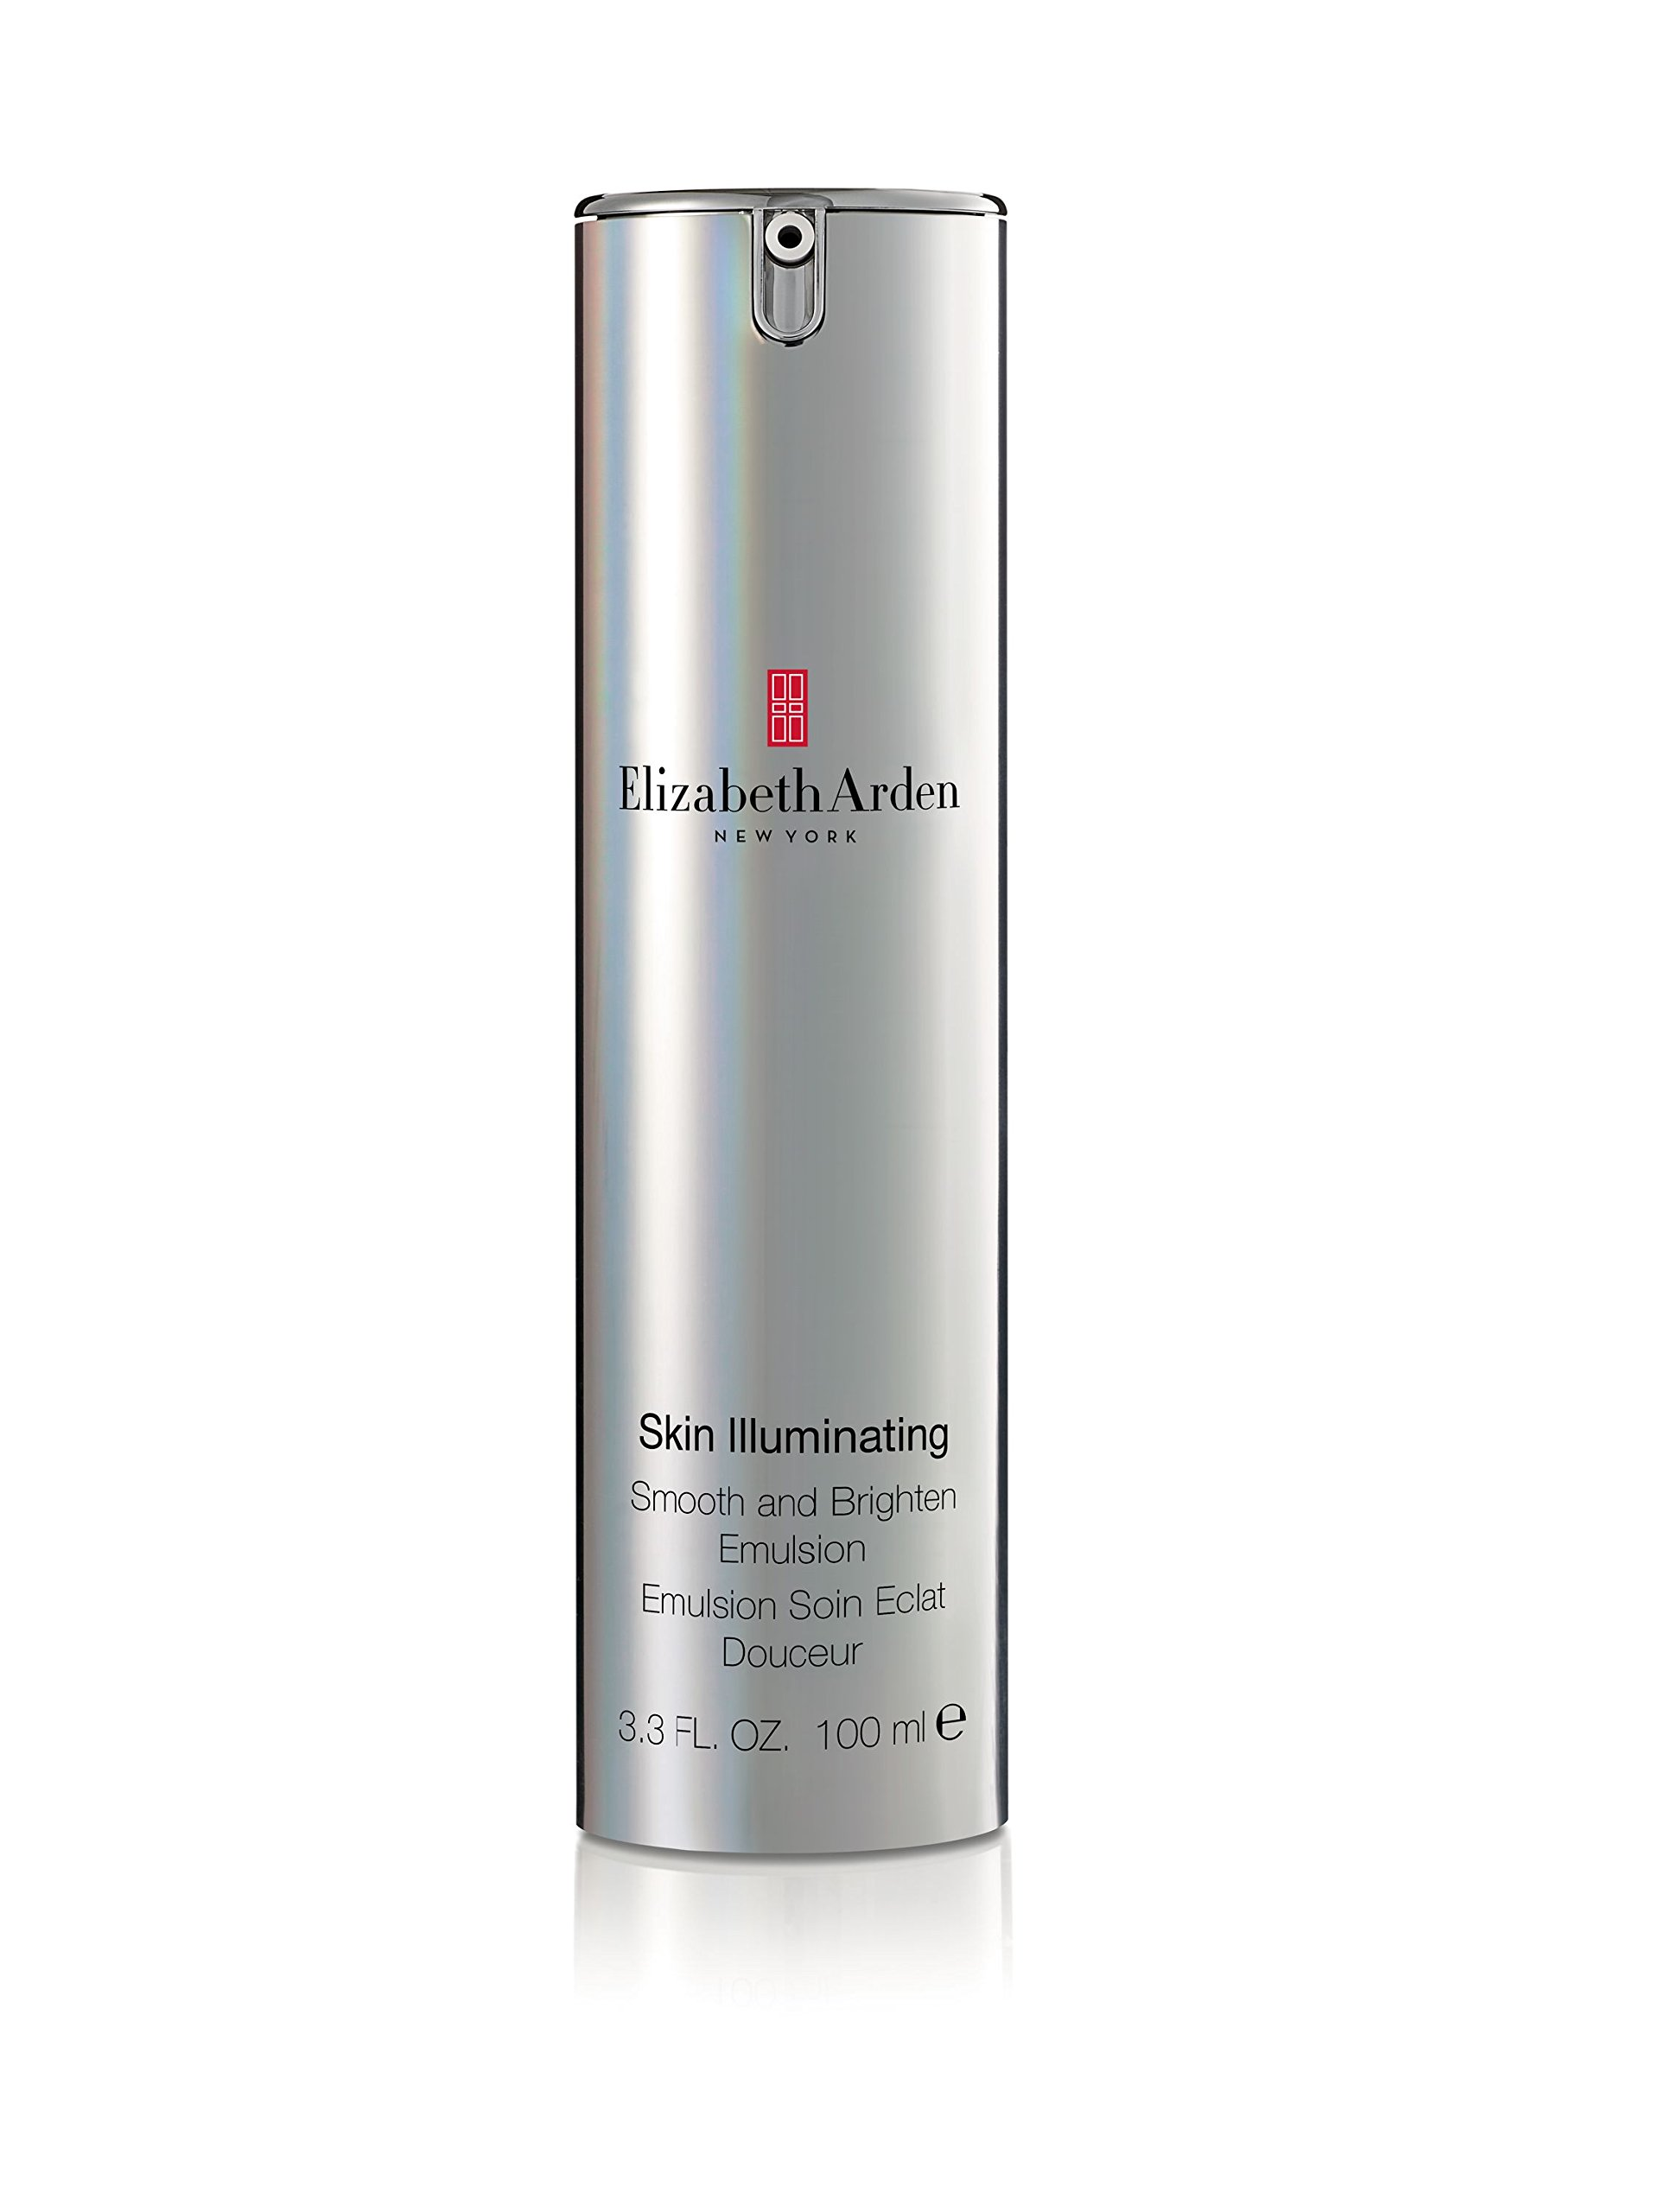 Elizabeth Arden Skin Illuminating Smooth and Brighten Emulsion, 3.3 Fl Oz